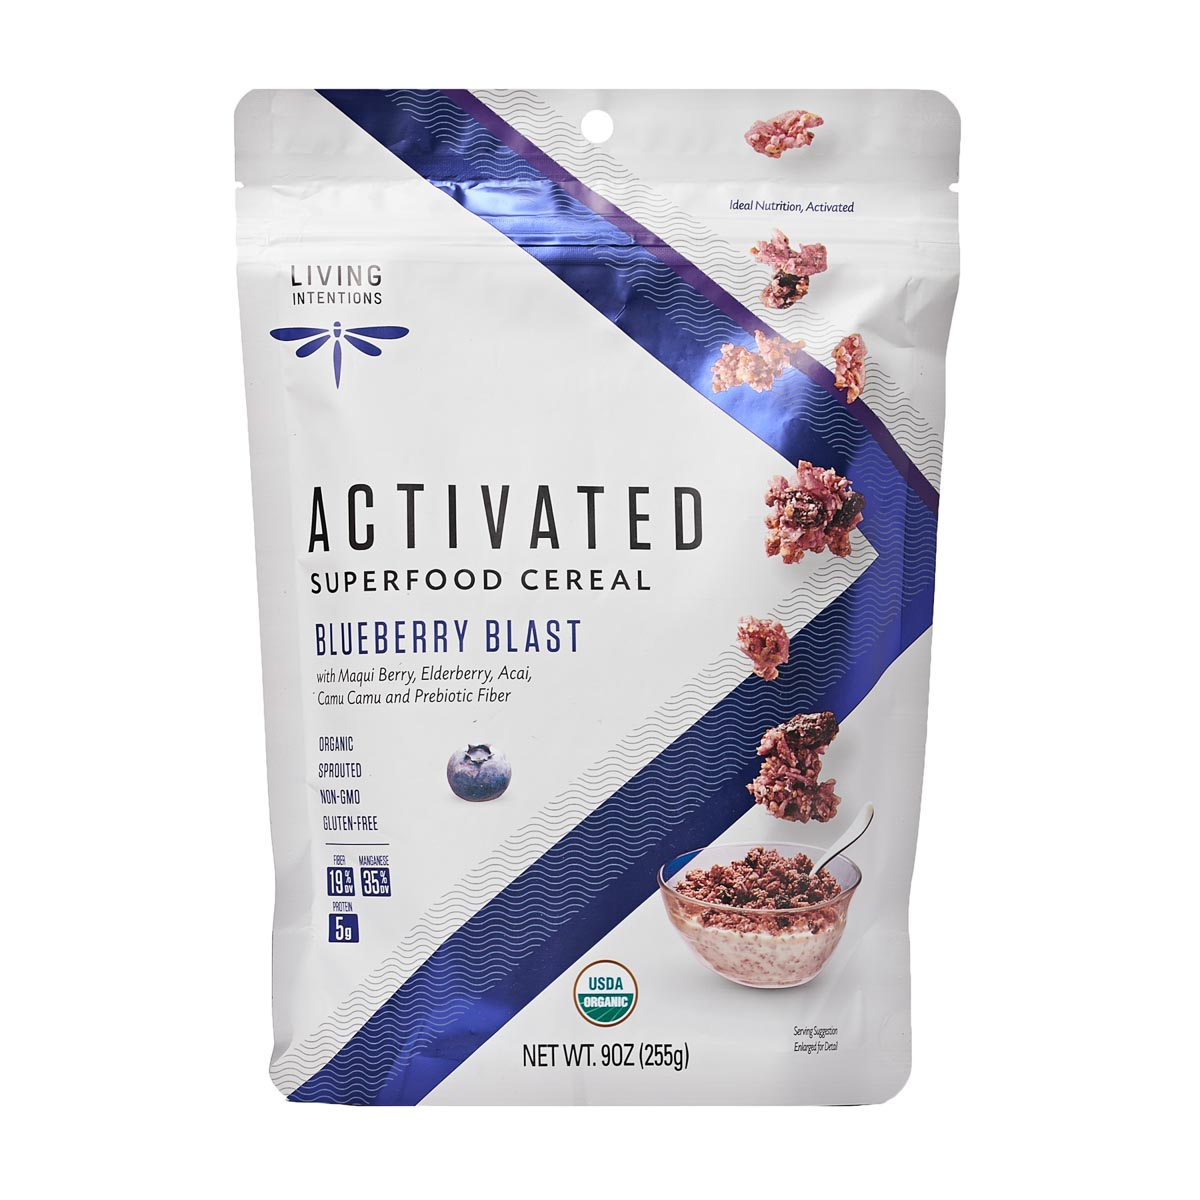 Super Food Cereal - Blueberry Blast (255g) - Living Intentions